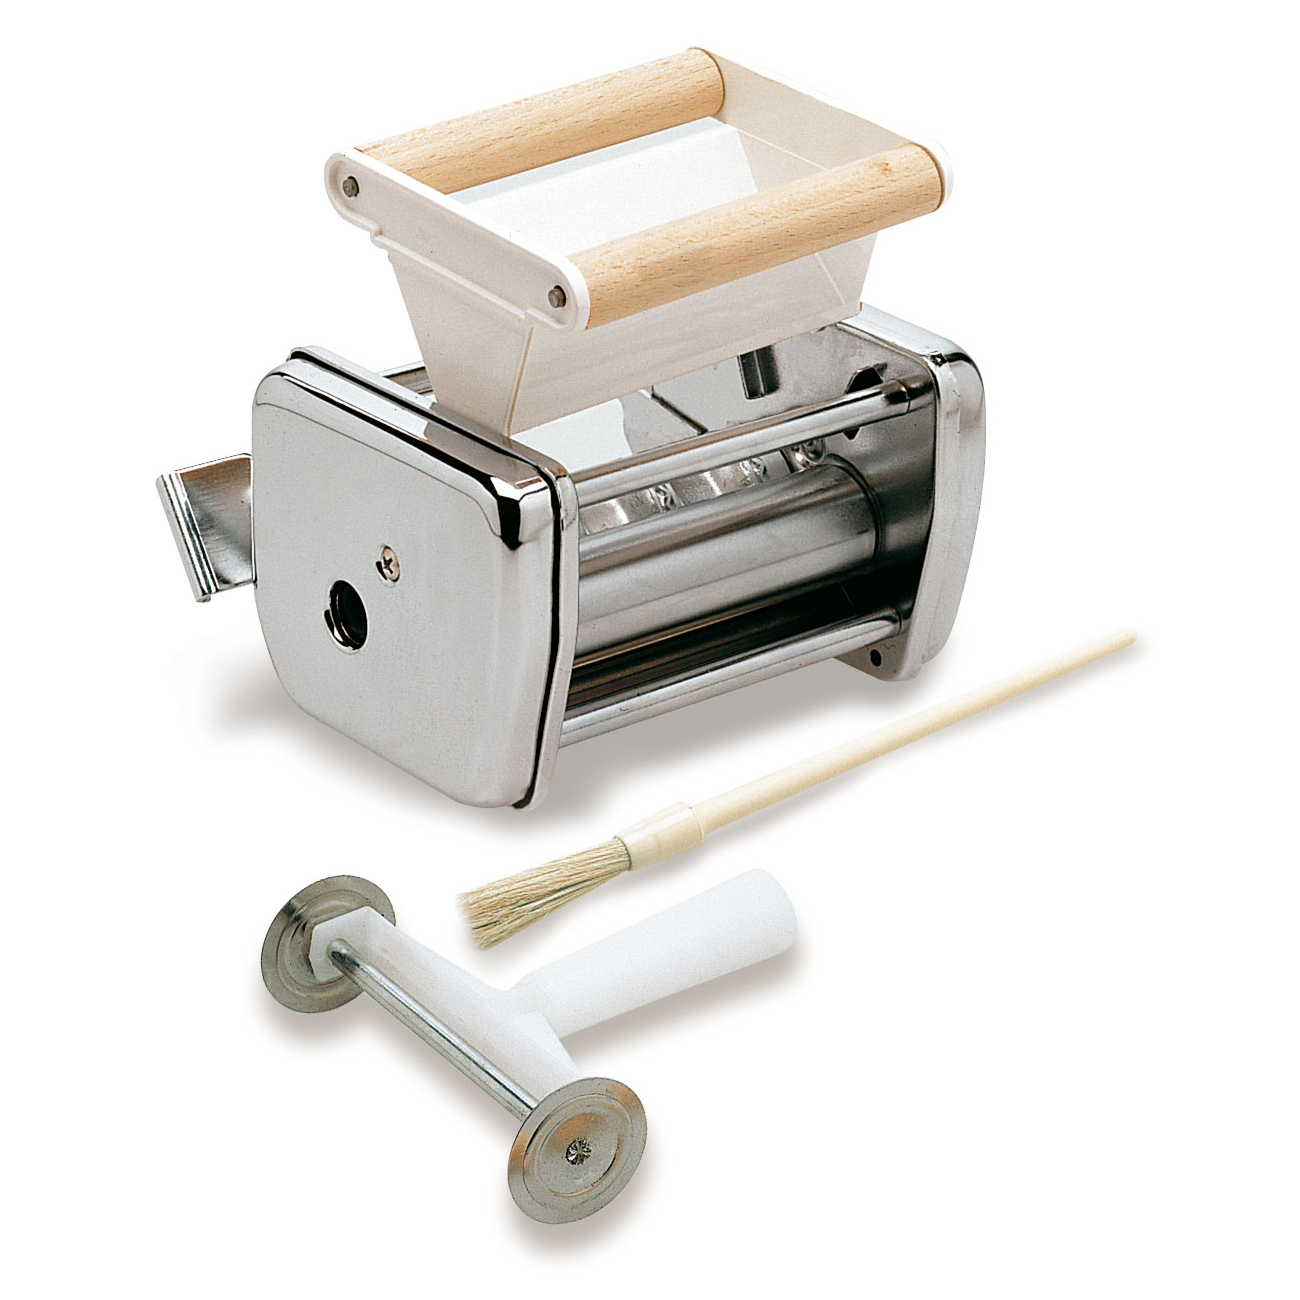 Imperia Stainless Steel Ravioli Maker Attachment